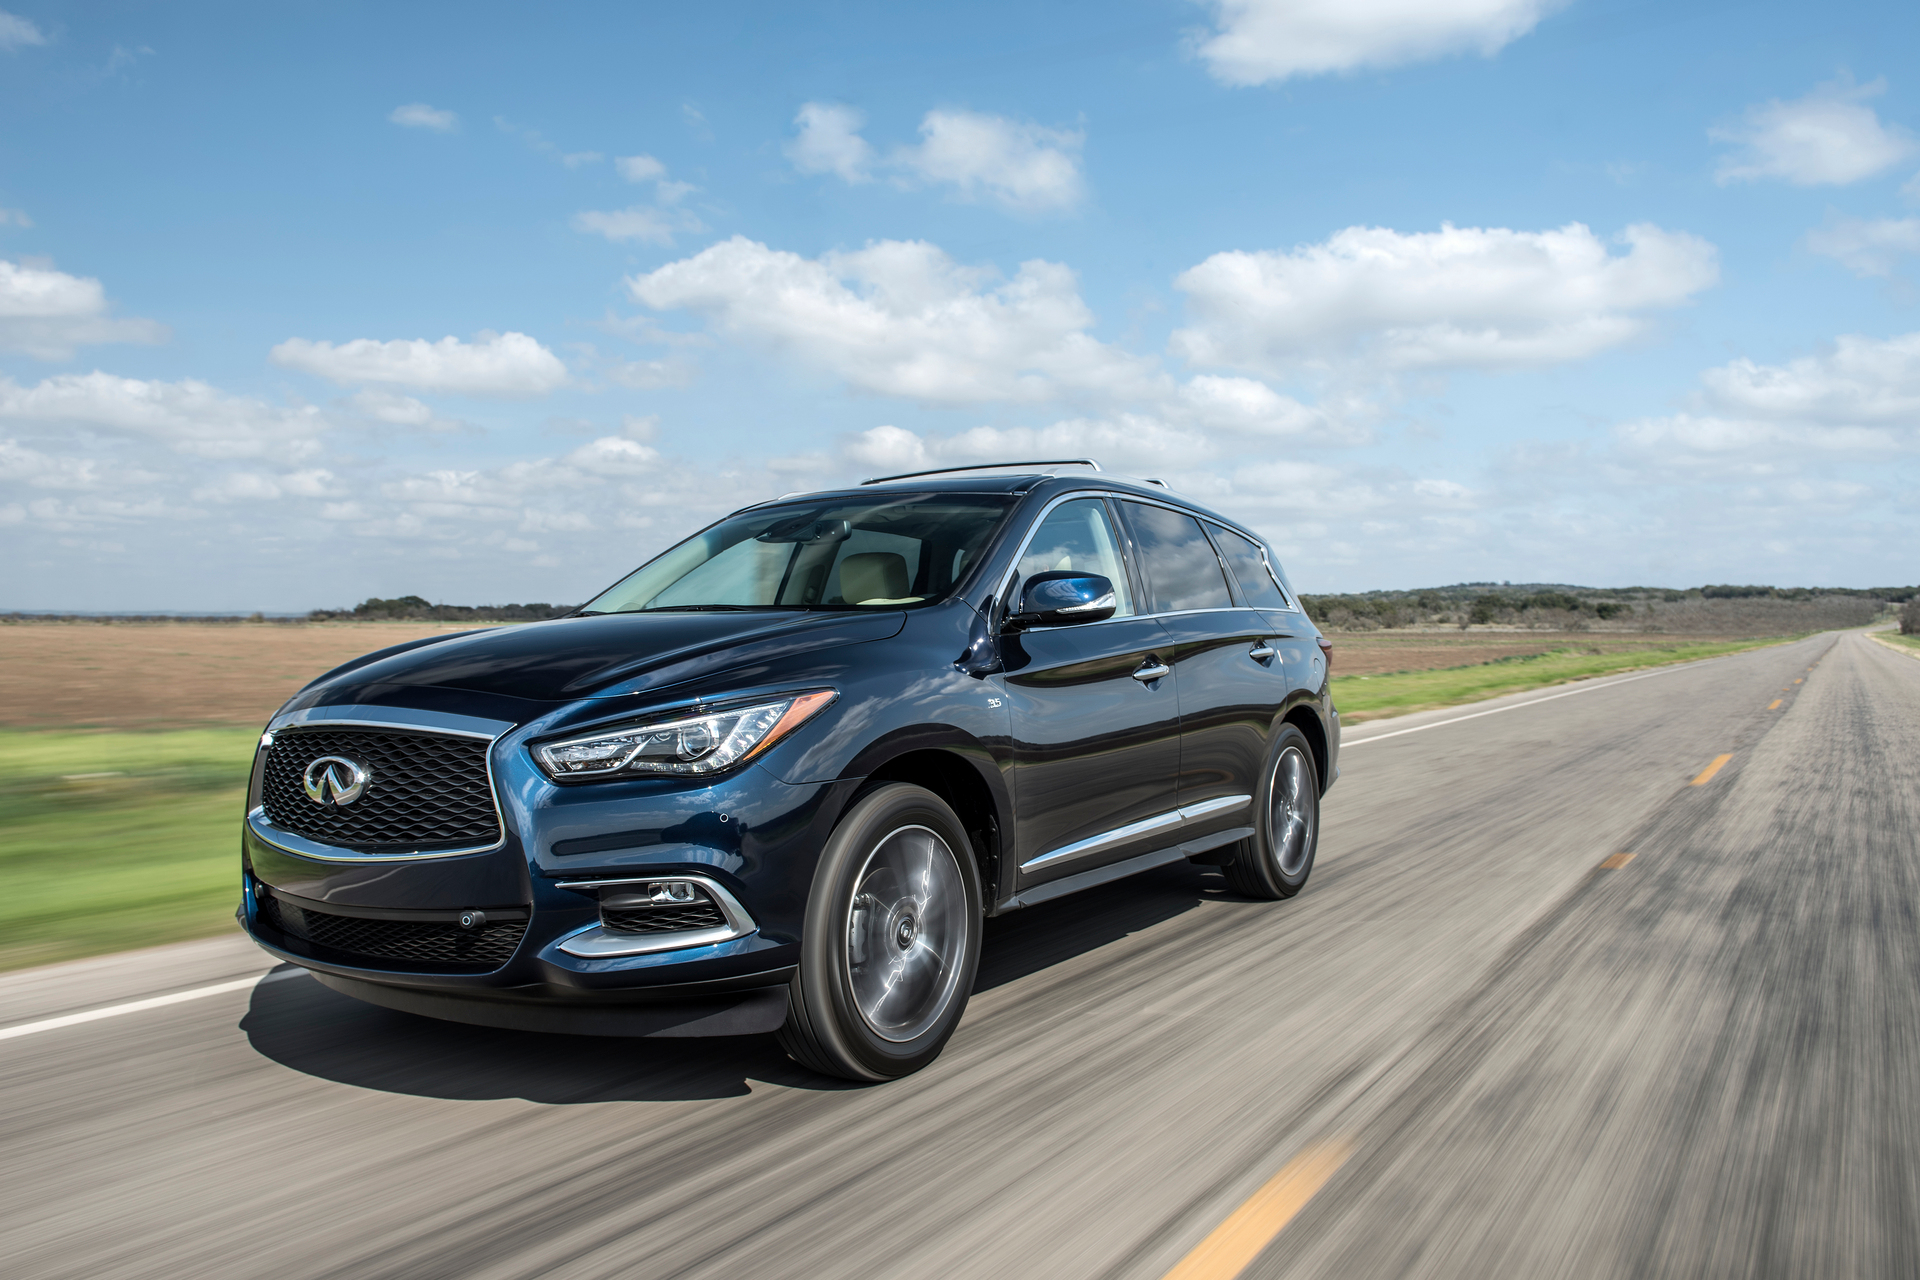 2016 Infiniti QX60 © Nissan Motor Co., Ltd.